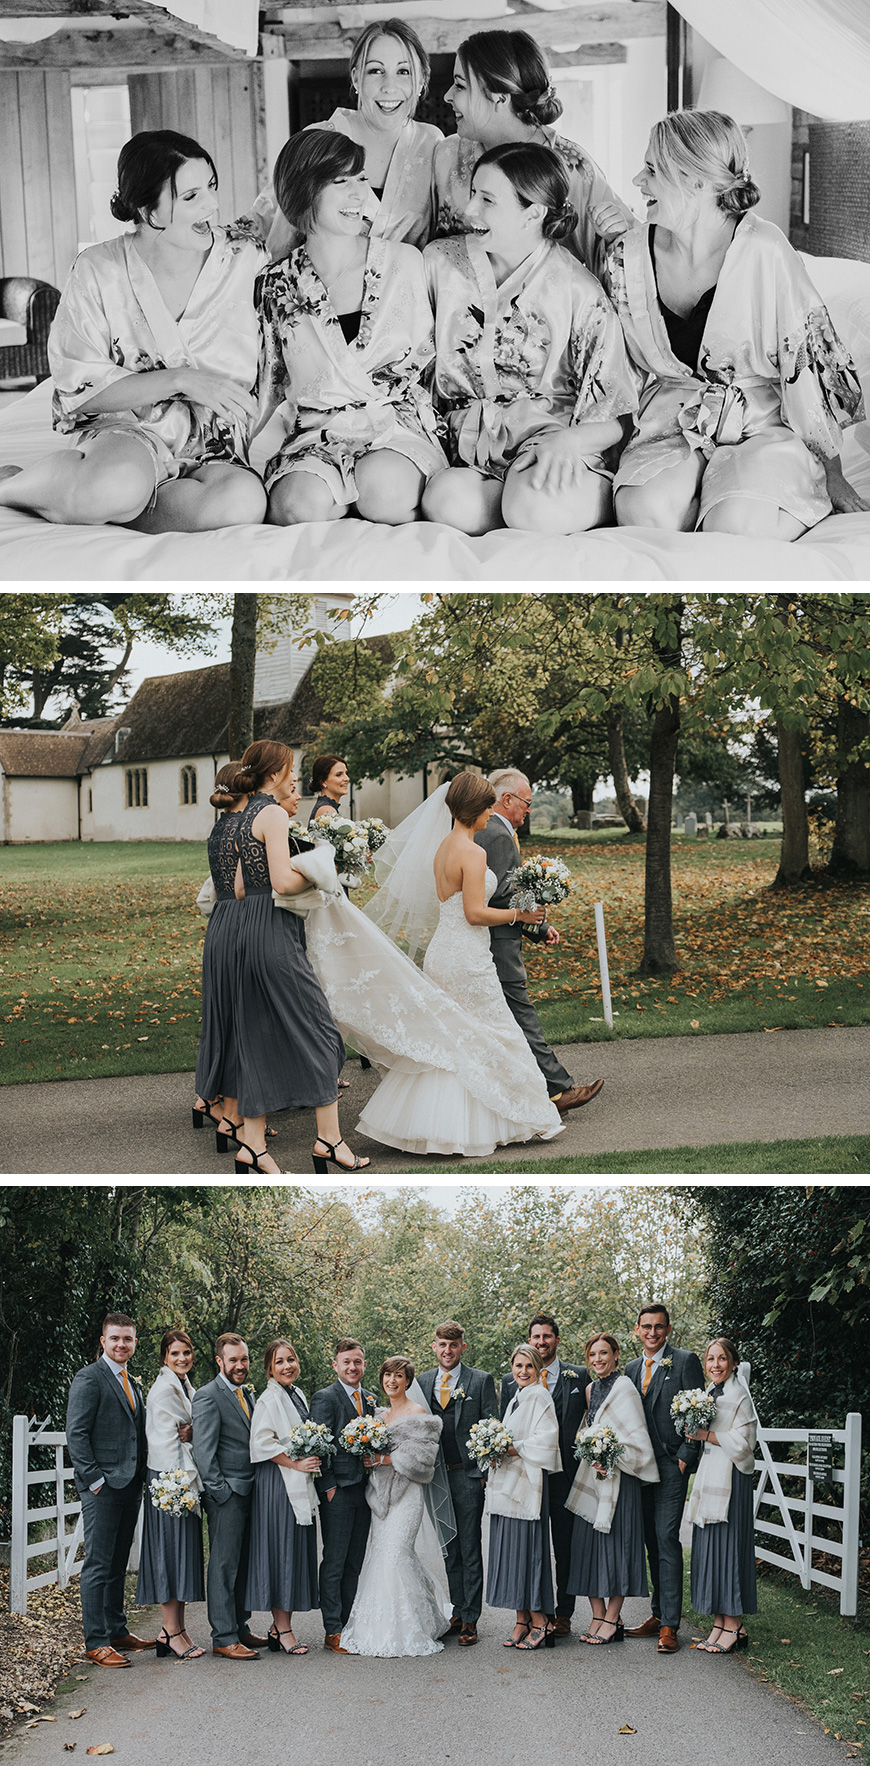 Real Wedding - Jenny and Steve's Handmade Autumn Wedding At Wasing Park | CHWV